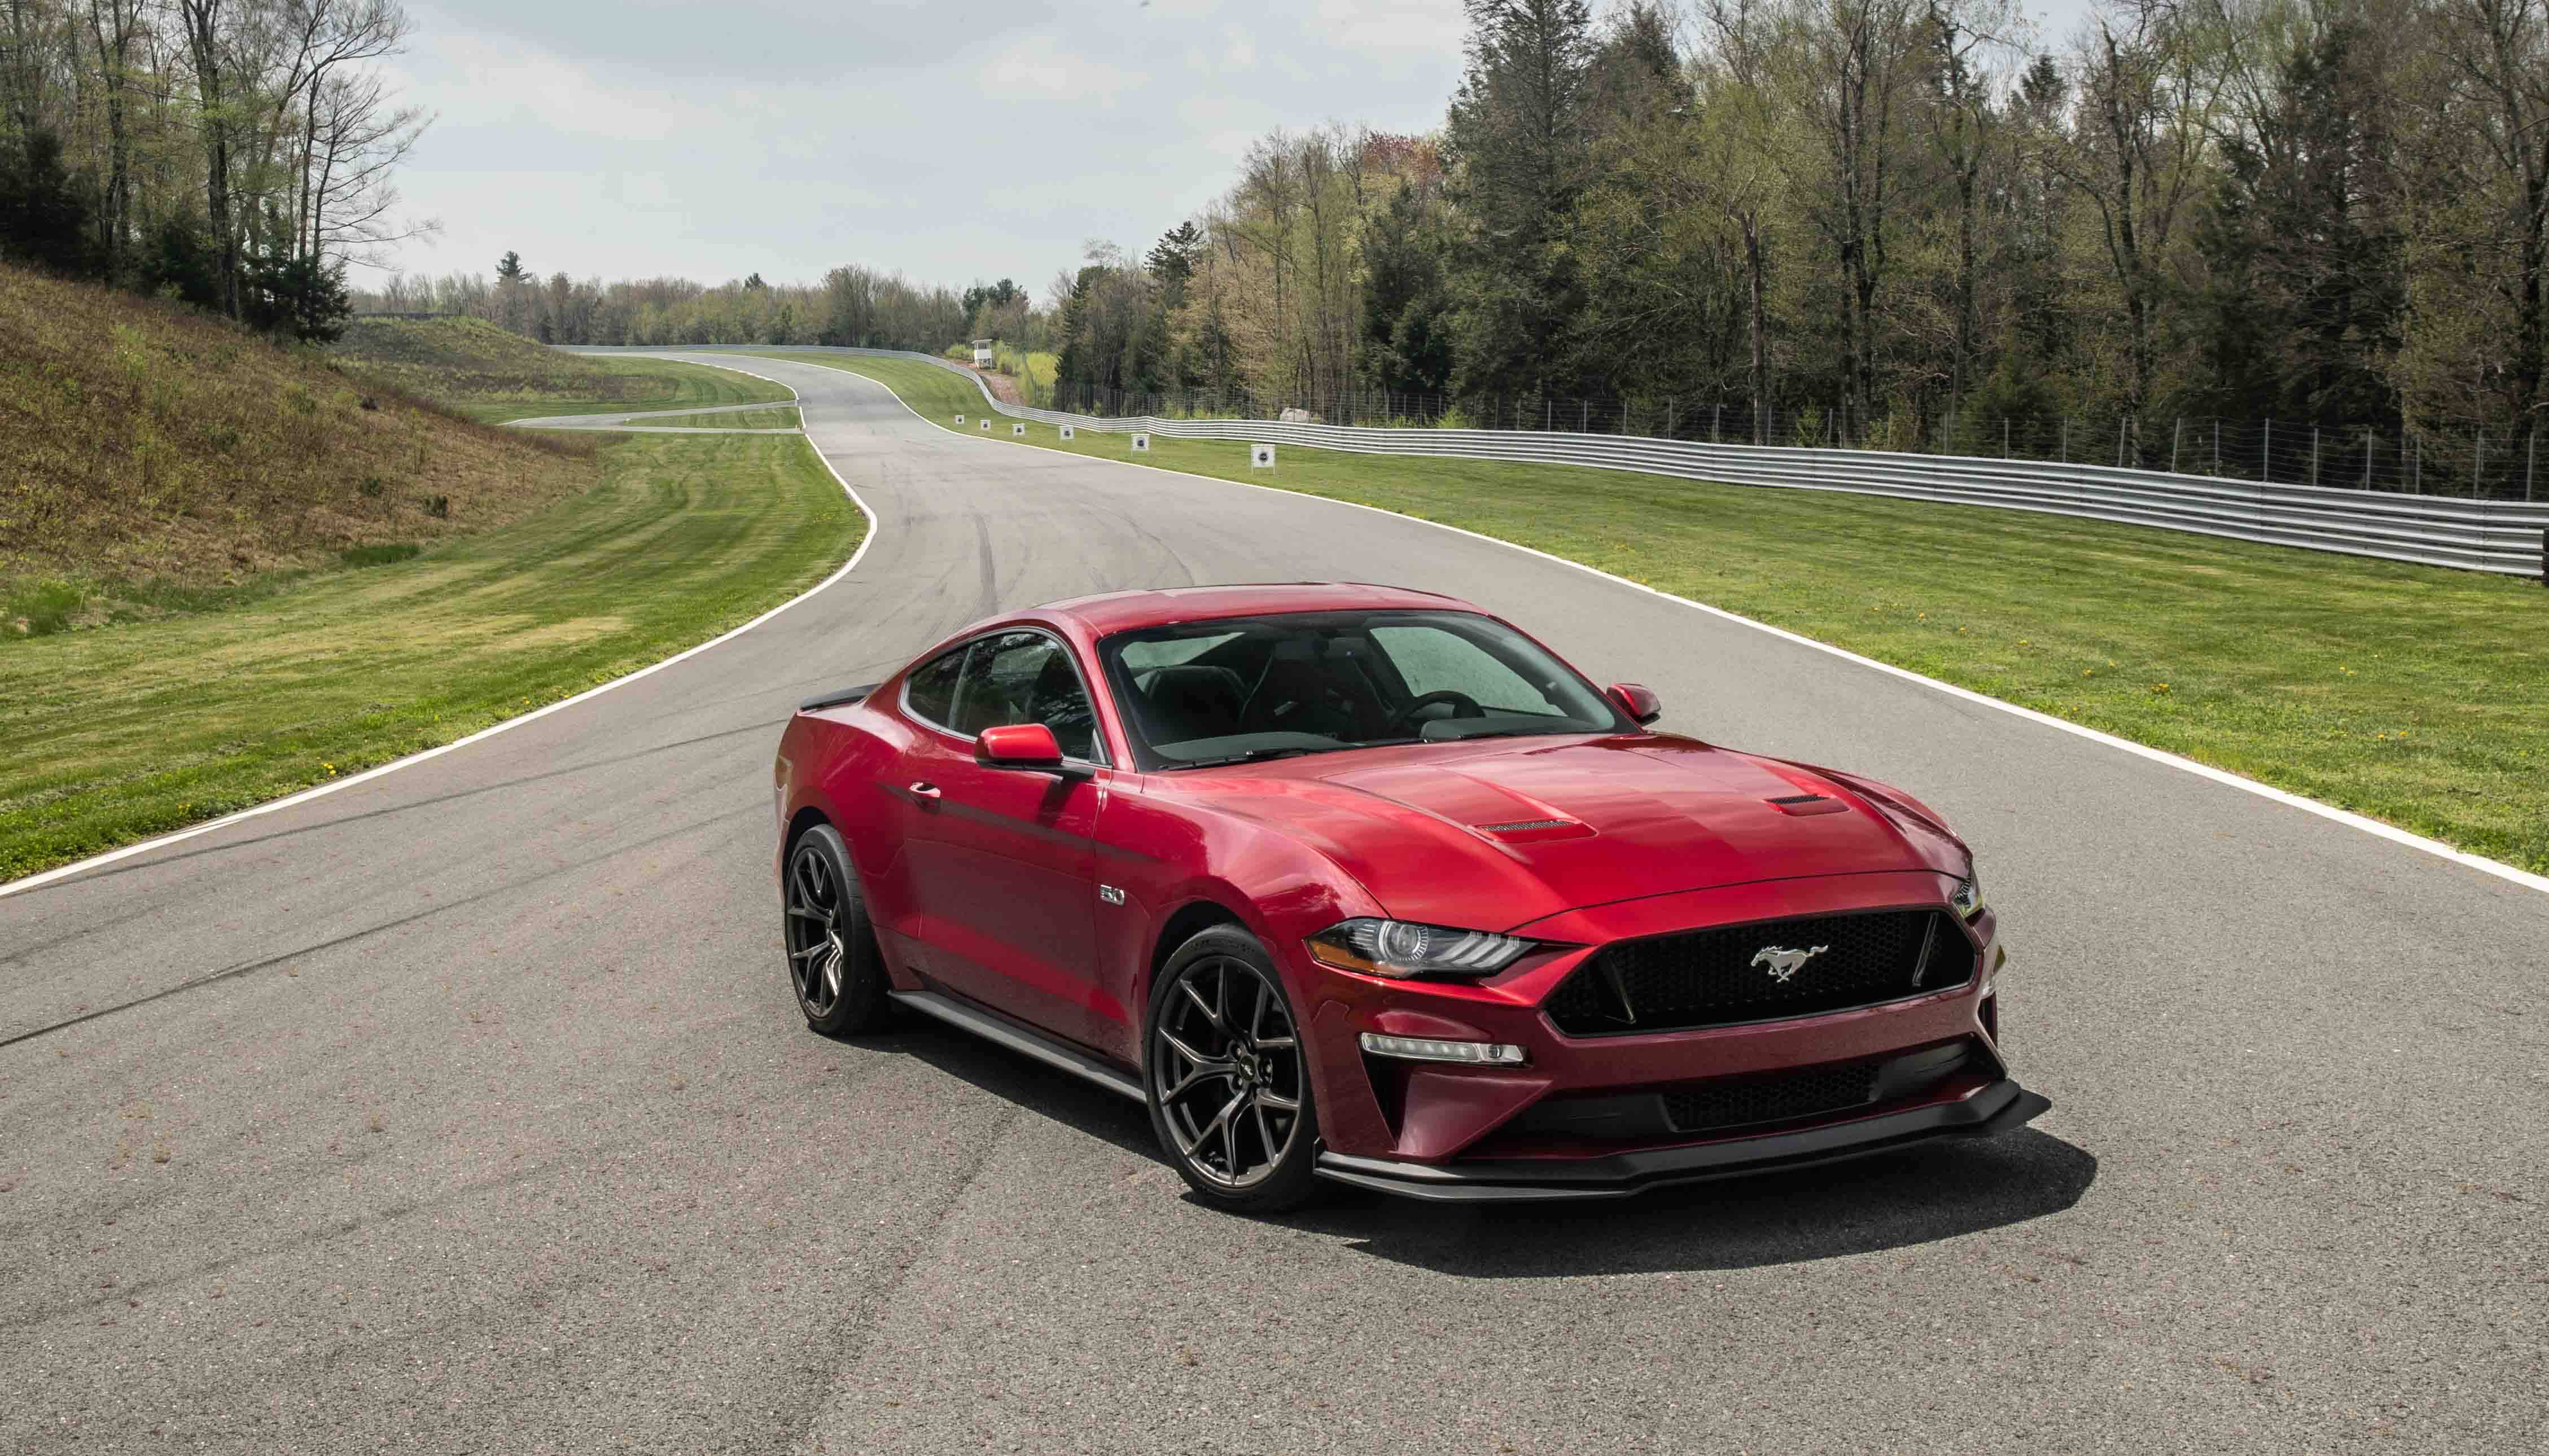 2018 Ford Mustang GT Performance Pack 2 red 3/4 high